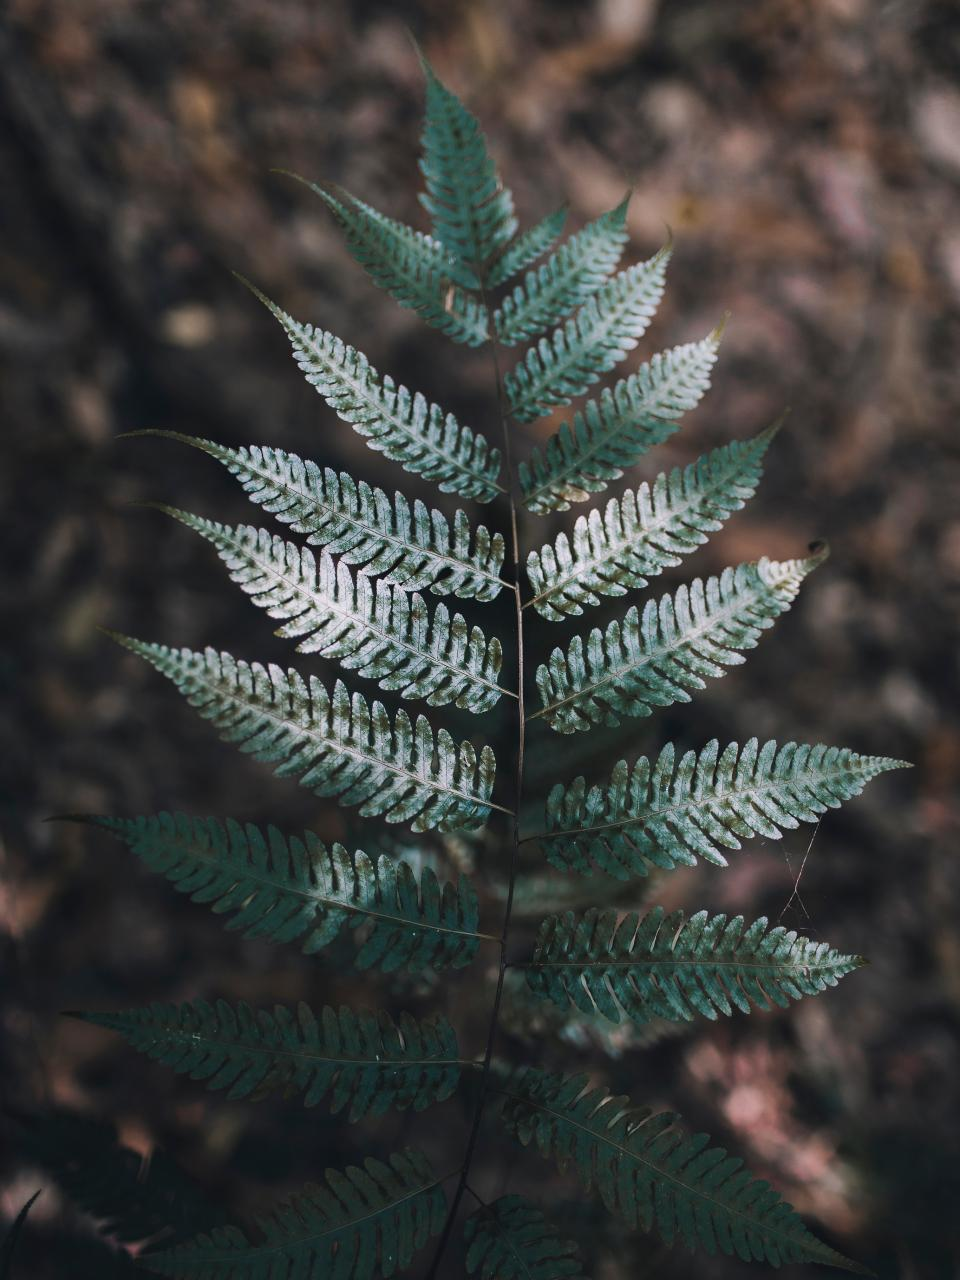 green leaf fern plant nature blur